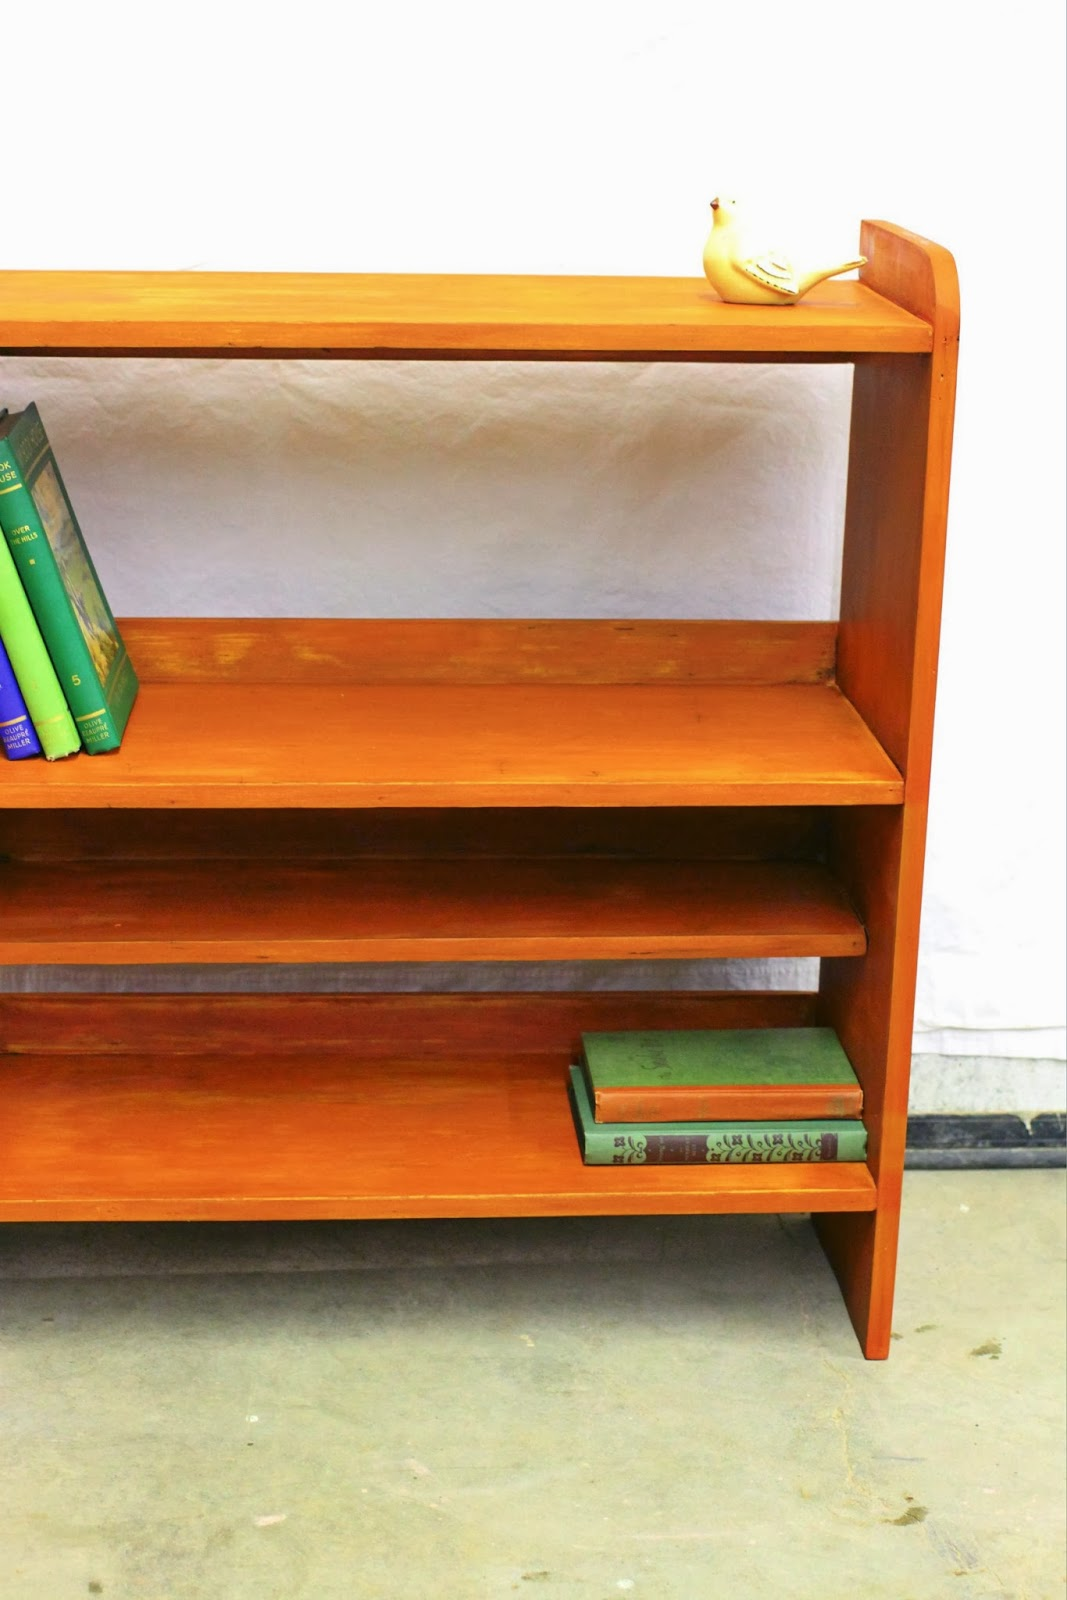 chelsea green orange red bookshelf blue brown leaning silver bookcase product